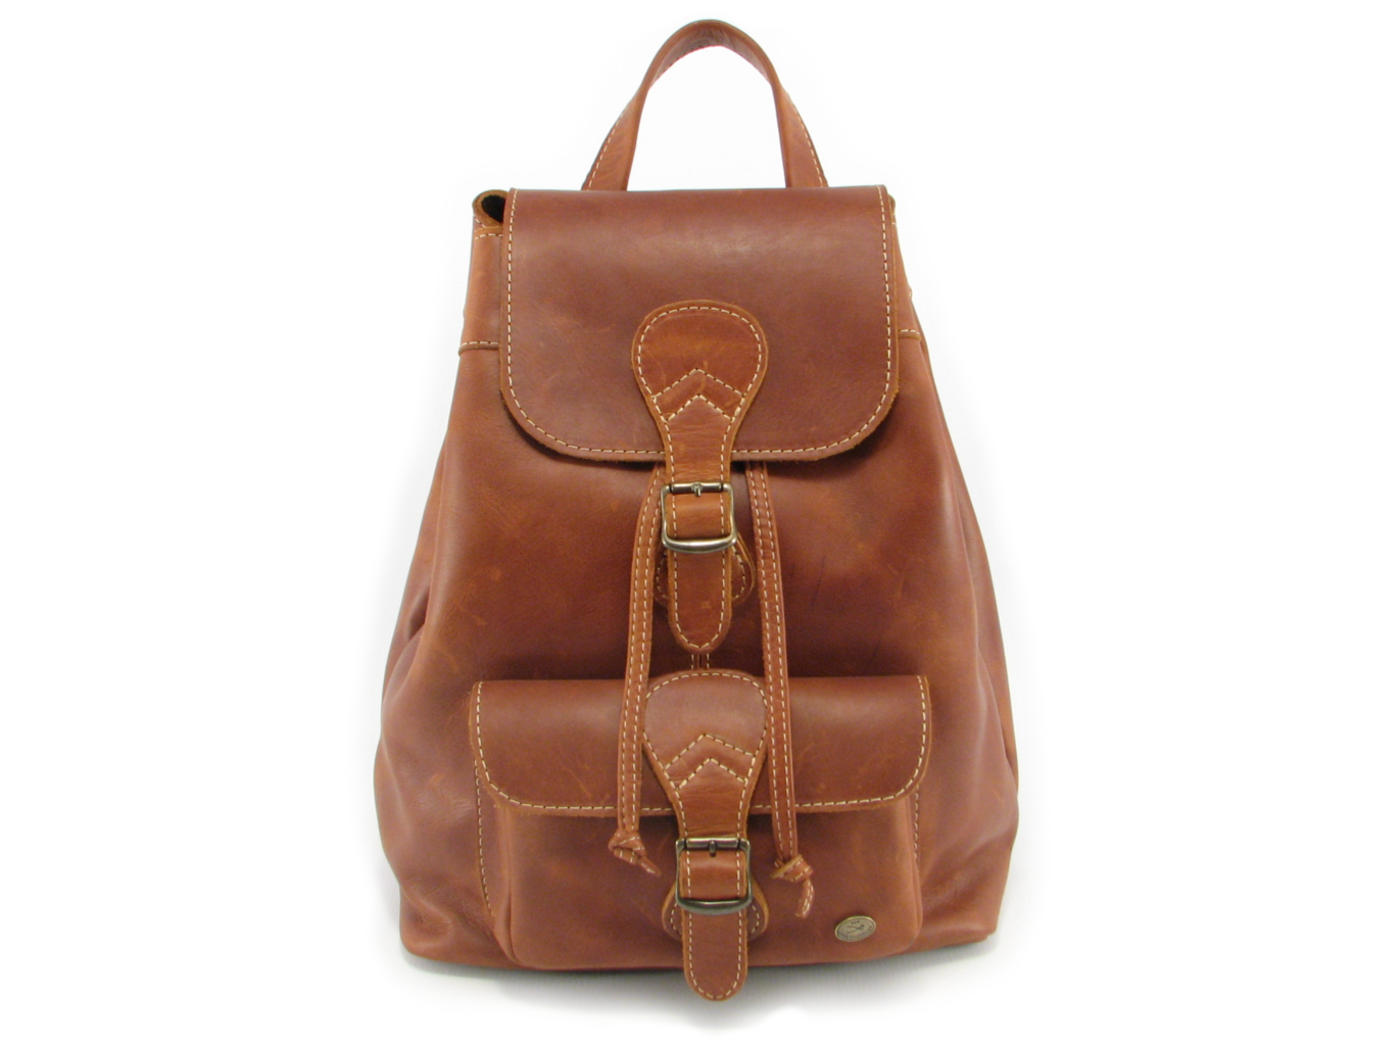 daa69cbcd3fb Hunters Rucksack HP7229 front leather backpack bags